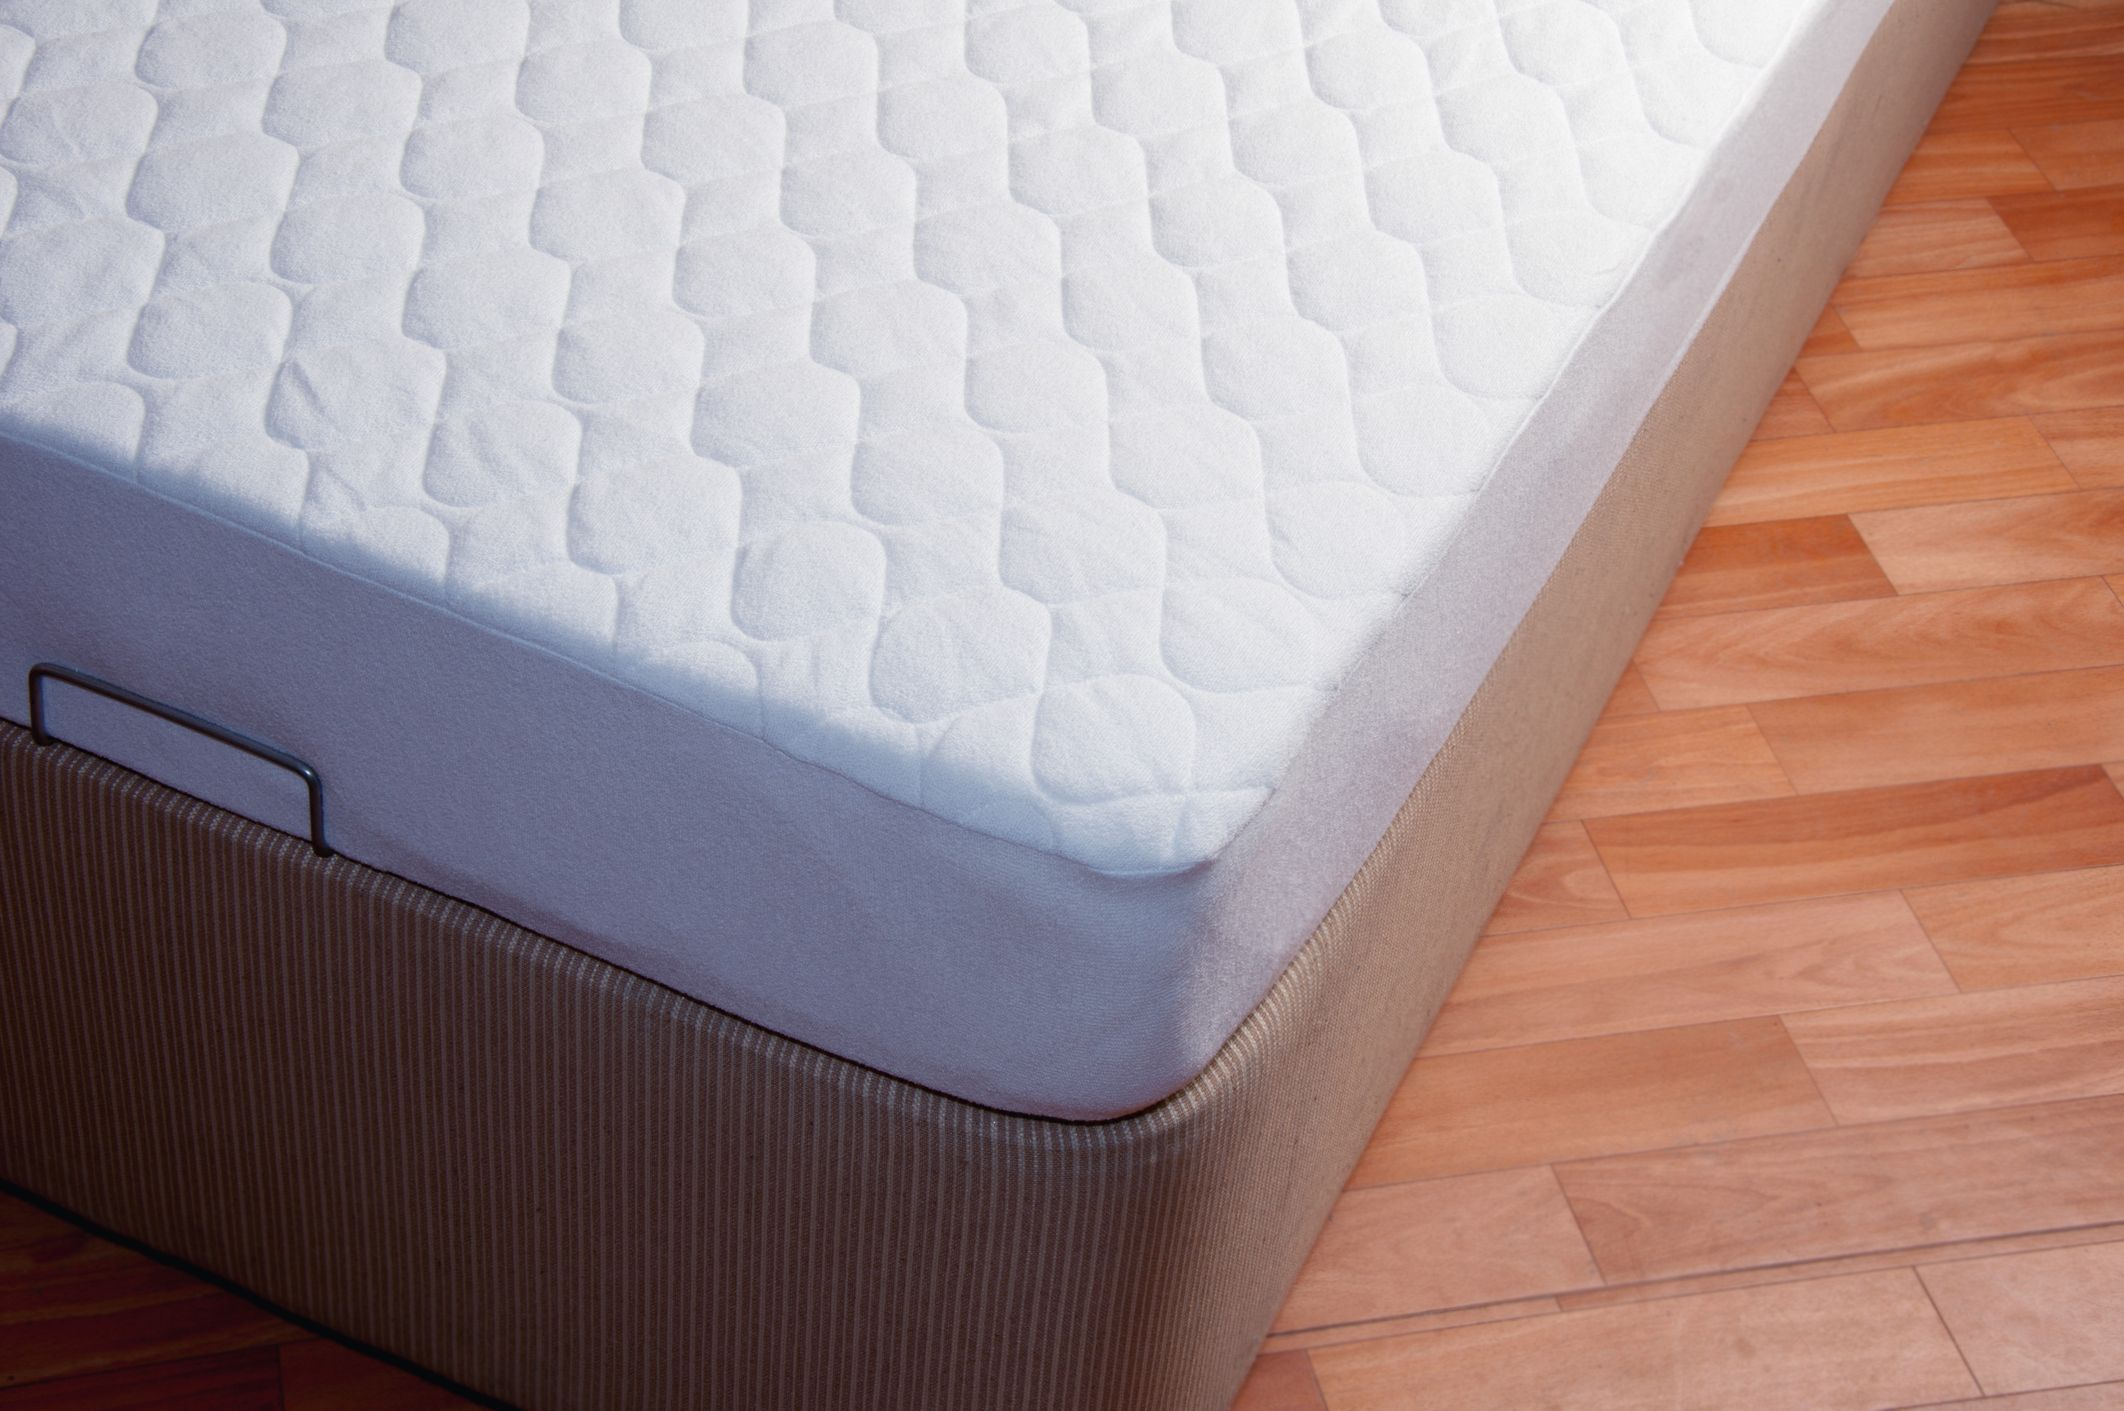 How to Properly Dispose of Your Mattress, Regardless of Its Condition